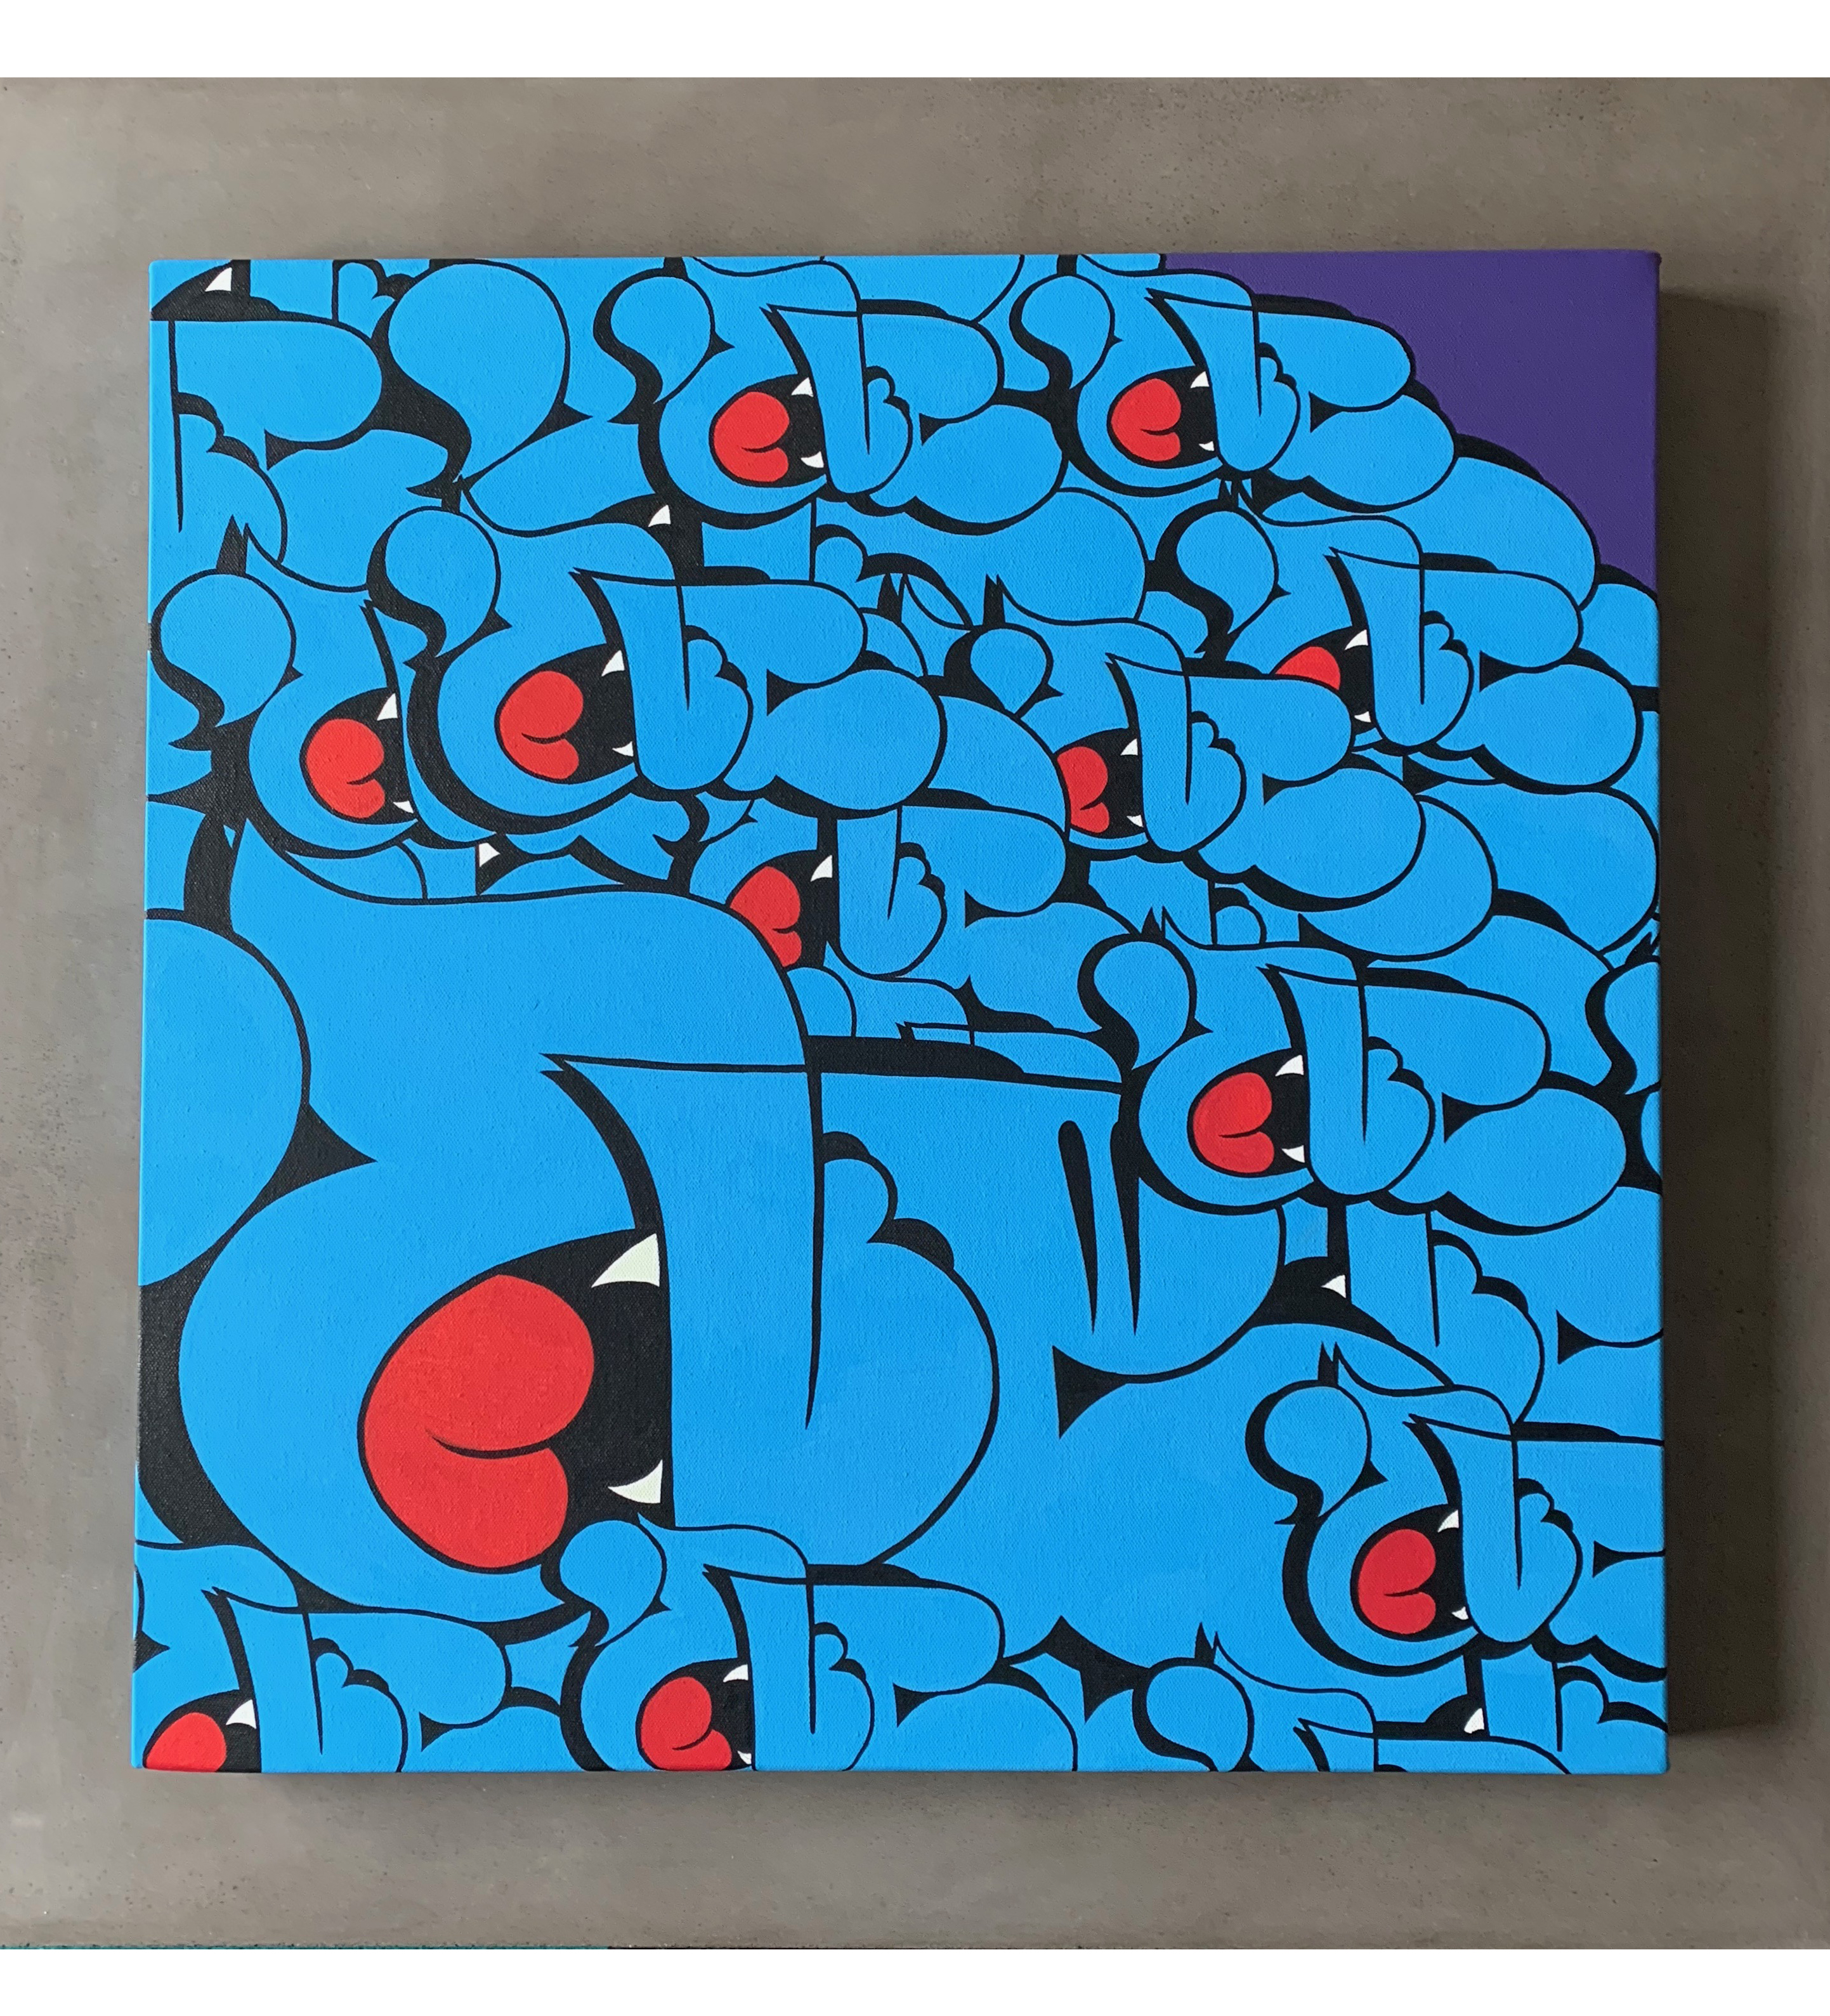 24' Throwie Canvas by Nover, Acrylic Paint & Markers, 2019.